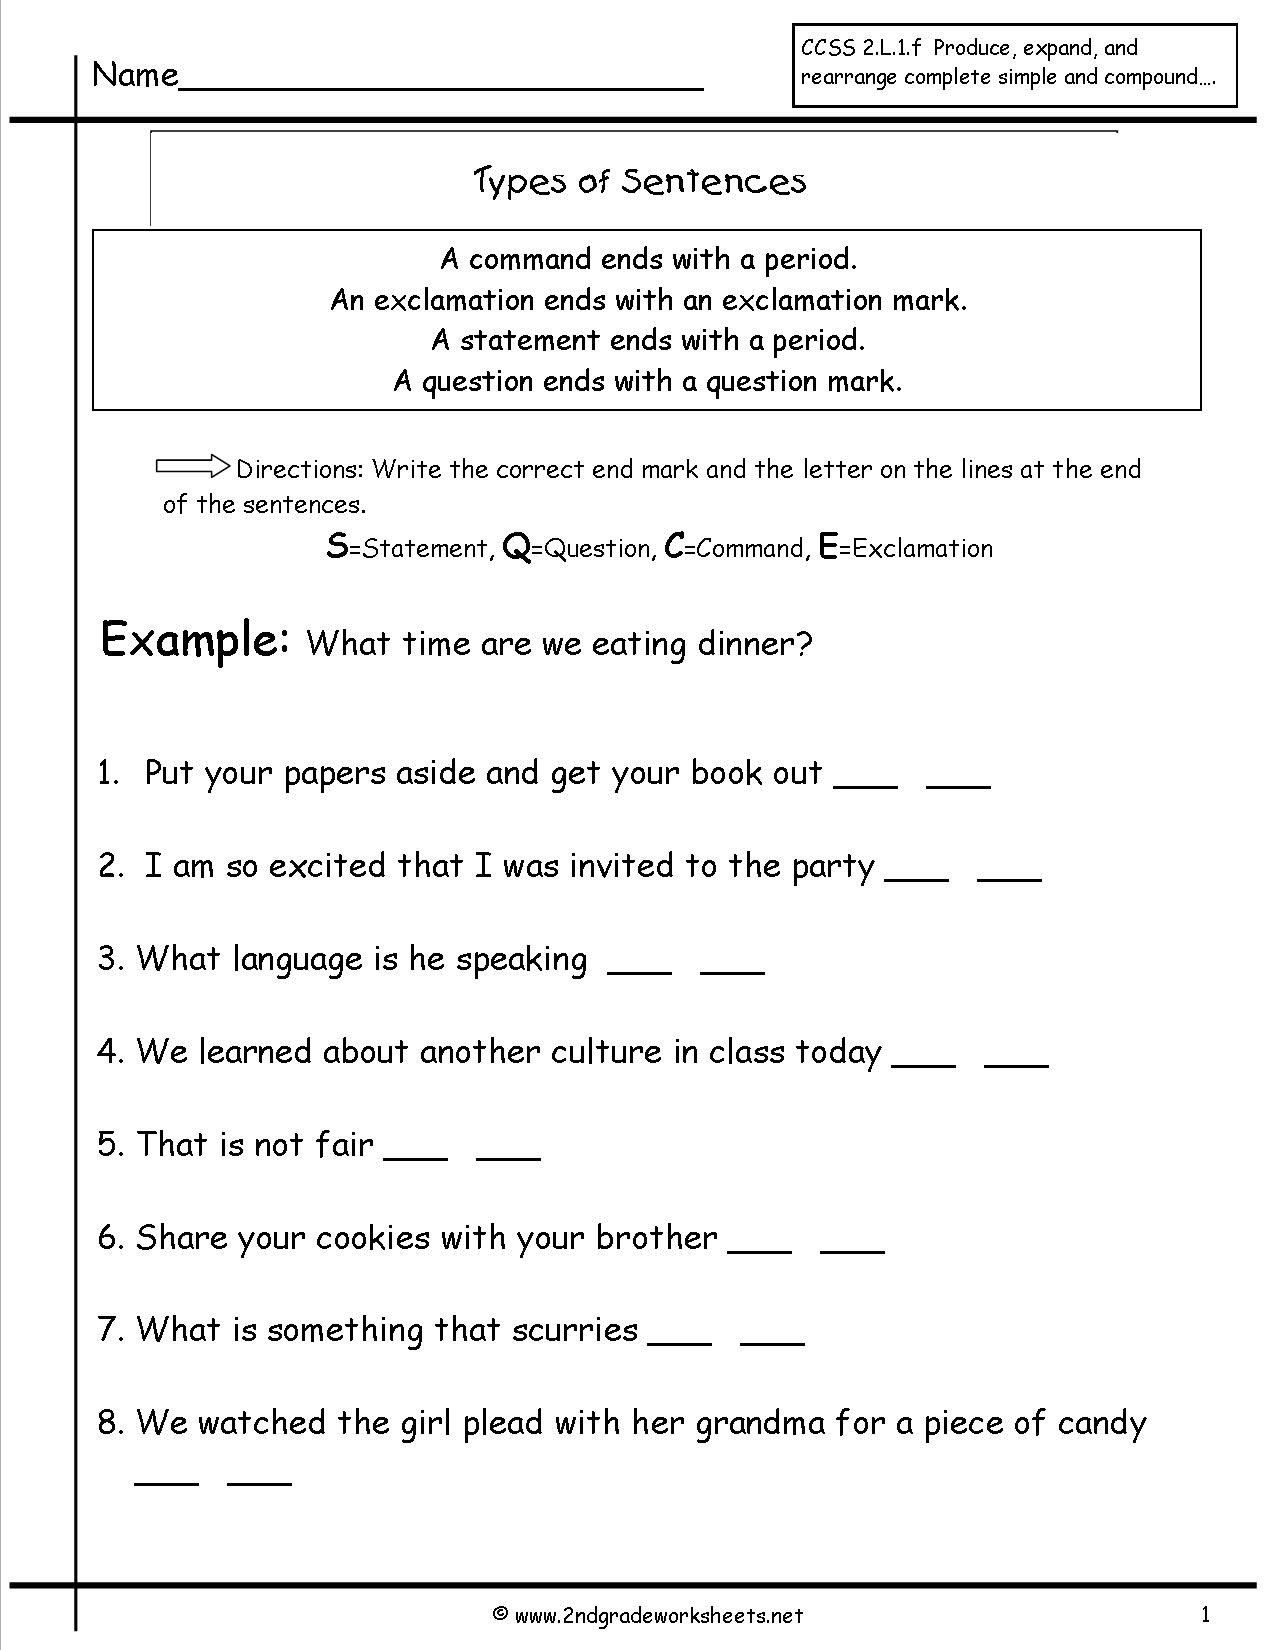 hight resolution of Complex Sentences Worksheet 5th Grade Second Grade Sentences Worksheets  Ccss 4th S… in 2020   Types of sentences worksheet